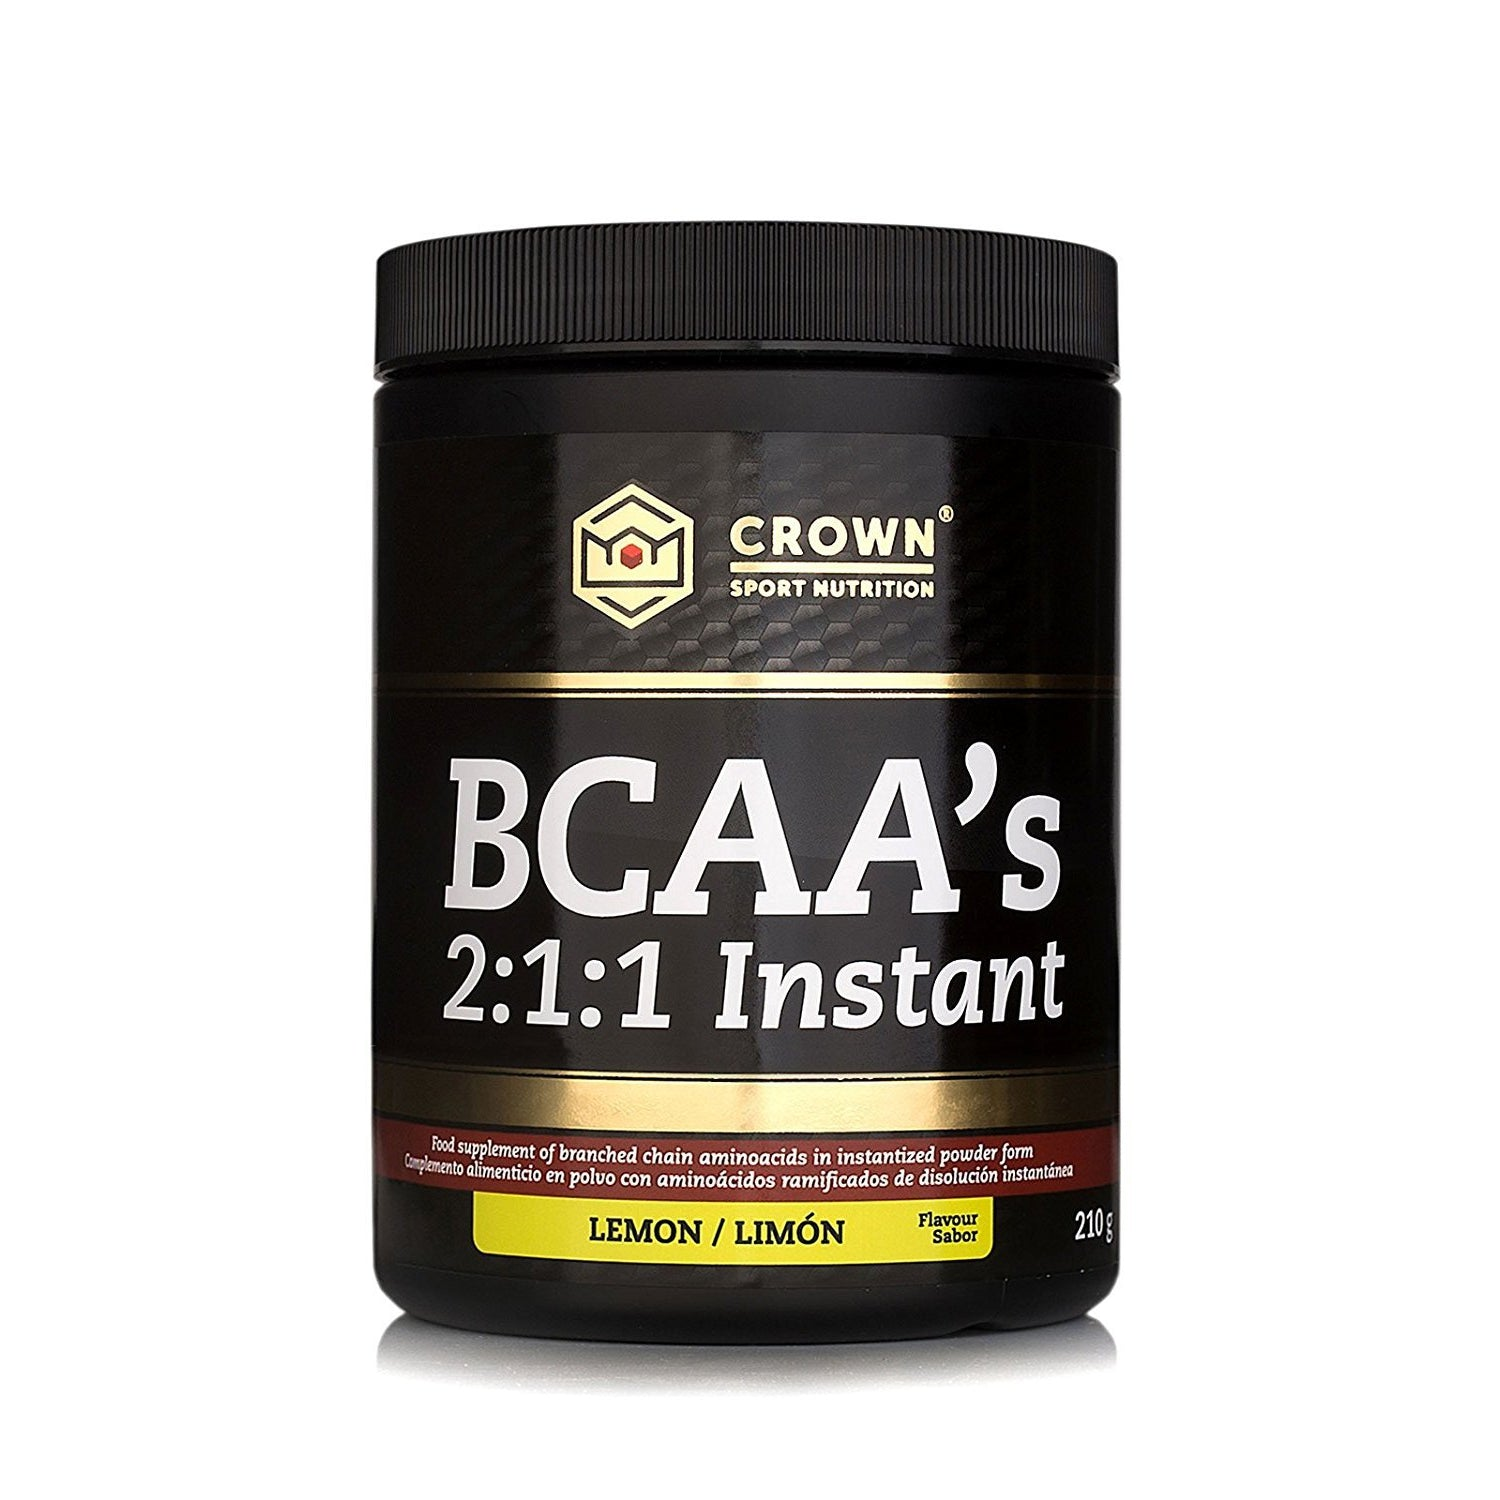 BCAA'S 2:1:1 Instant Limón. Crown Sport Nutrition